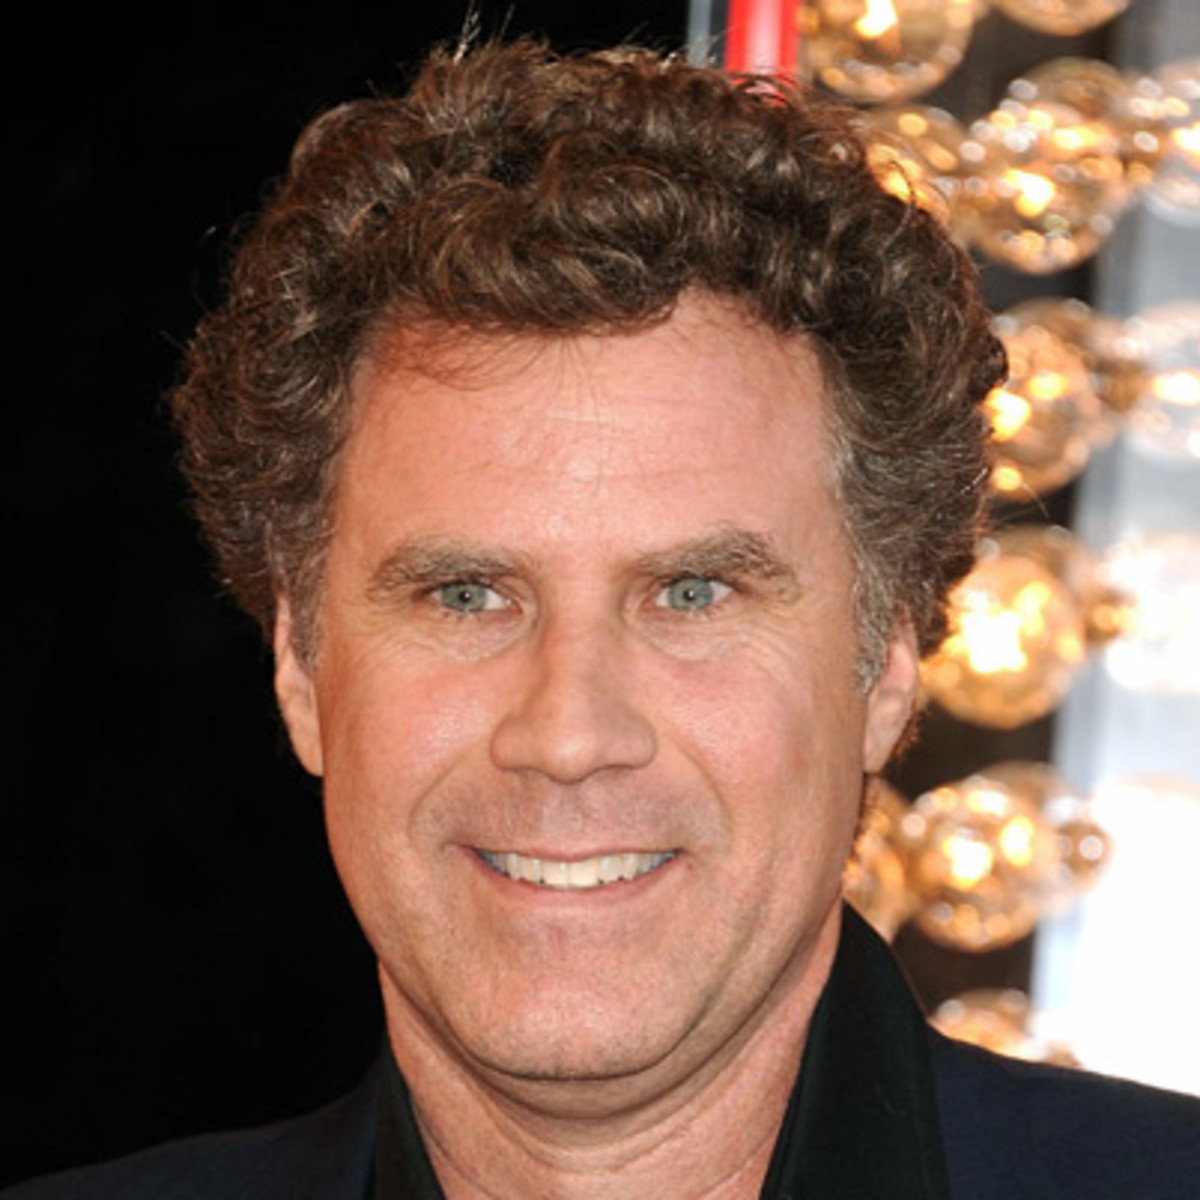 Will Ferrell starred as Sherlock Holmes in Holmes & Watson. The famous actor could not help bring this movie back from disaster. (Photo obtained via Wikimedia Commons under a Creative Commons license)